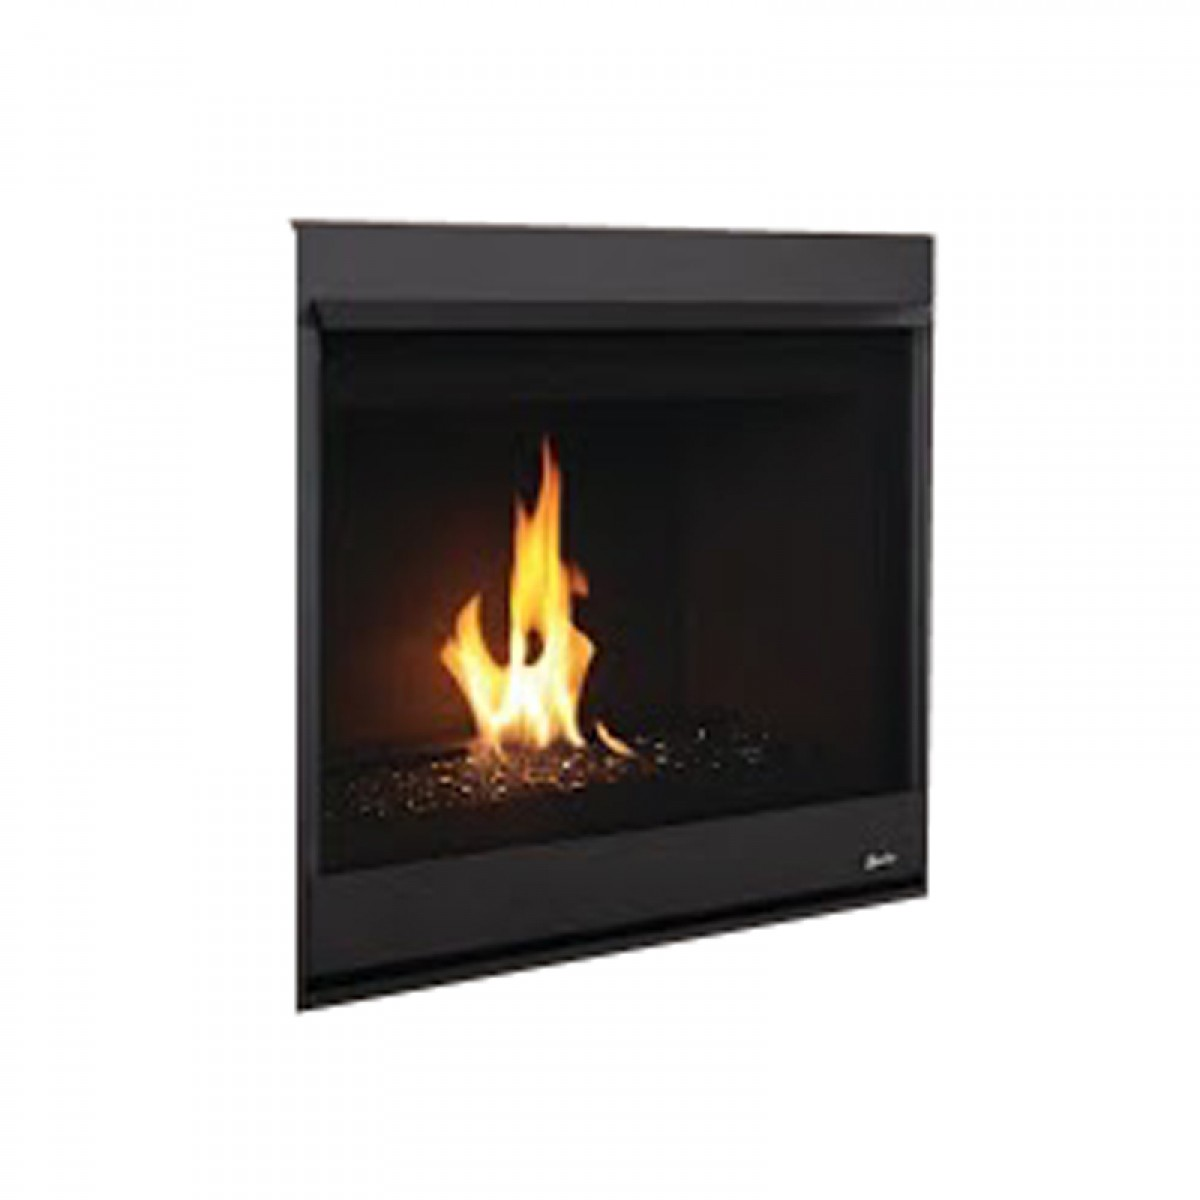 Ihp Superior Drc2000 Direct Vent Gas Fireplace